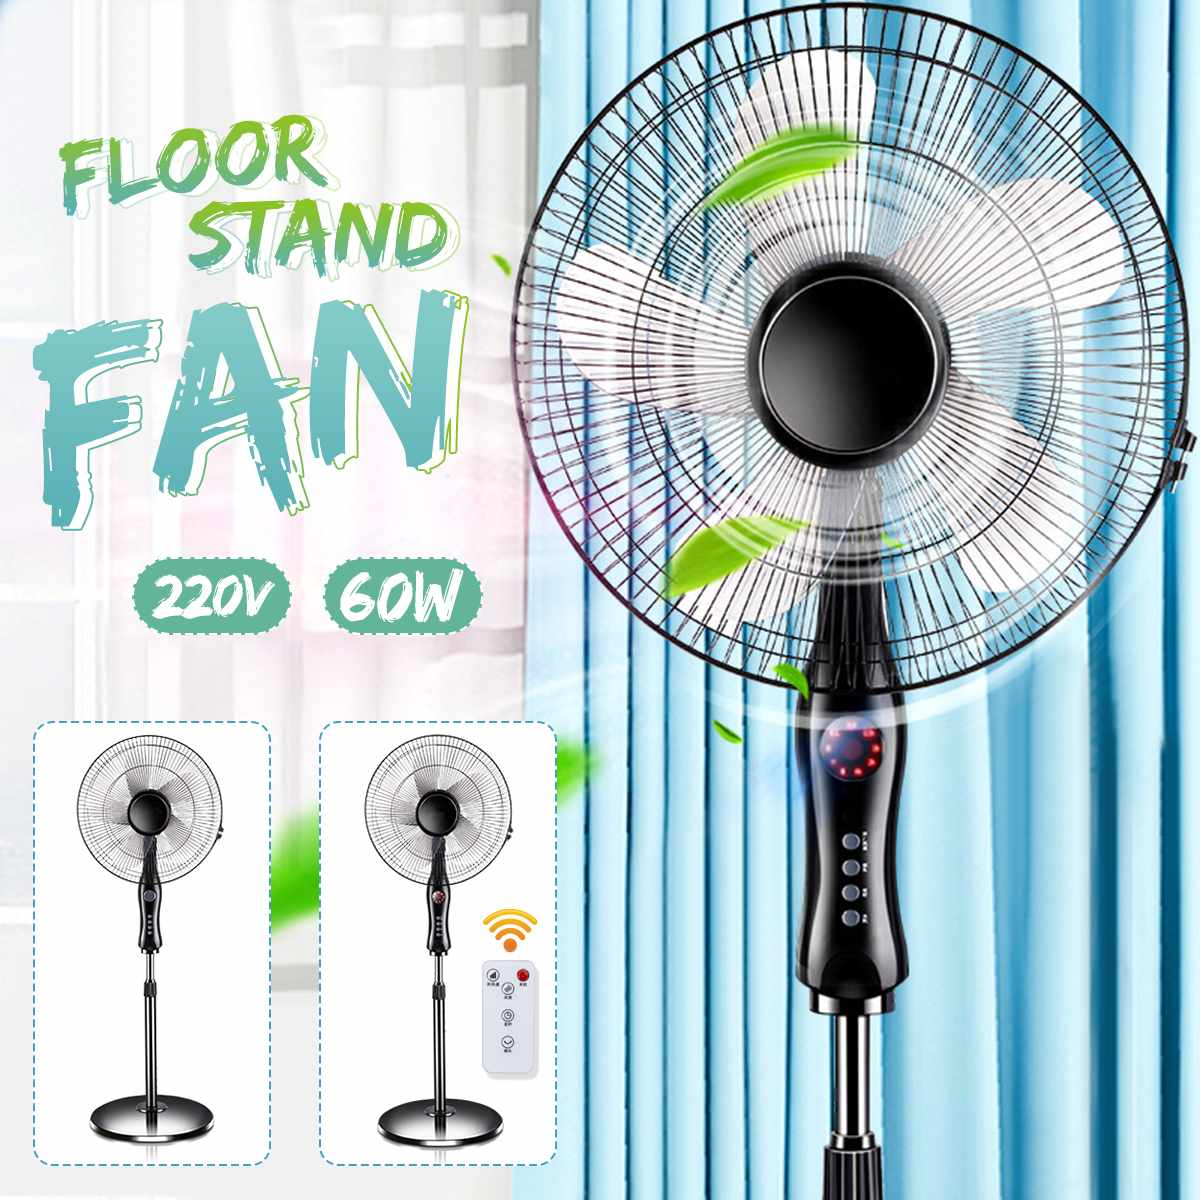 16 Inch Floor Fan Stand Fan Mechanical Remote control Air Cooler Summer Cooling Household Floor Standing